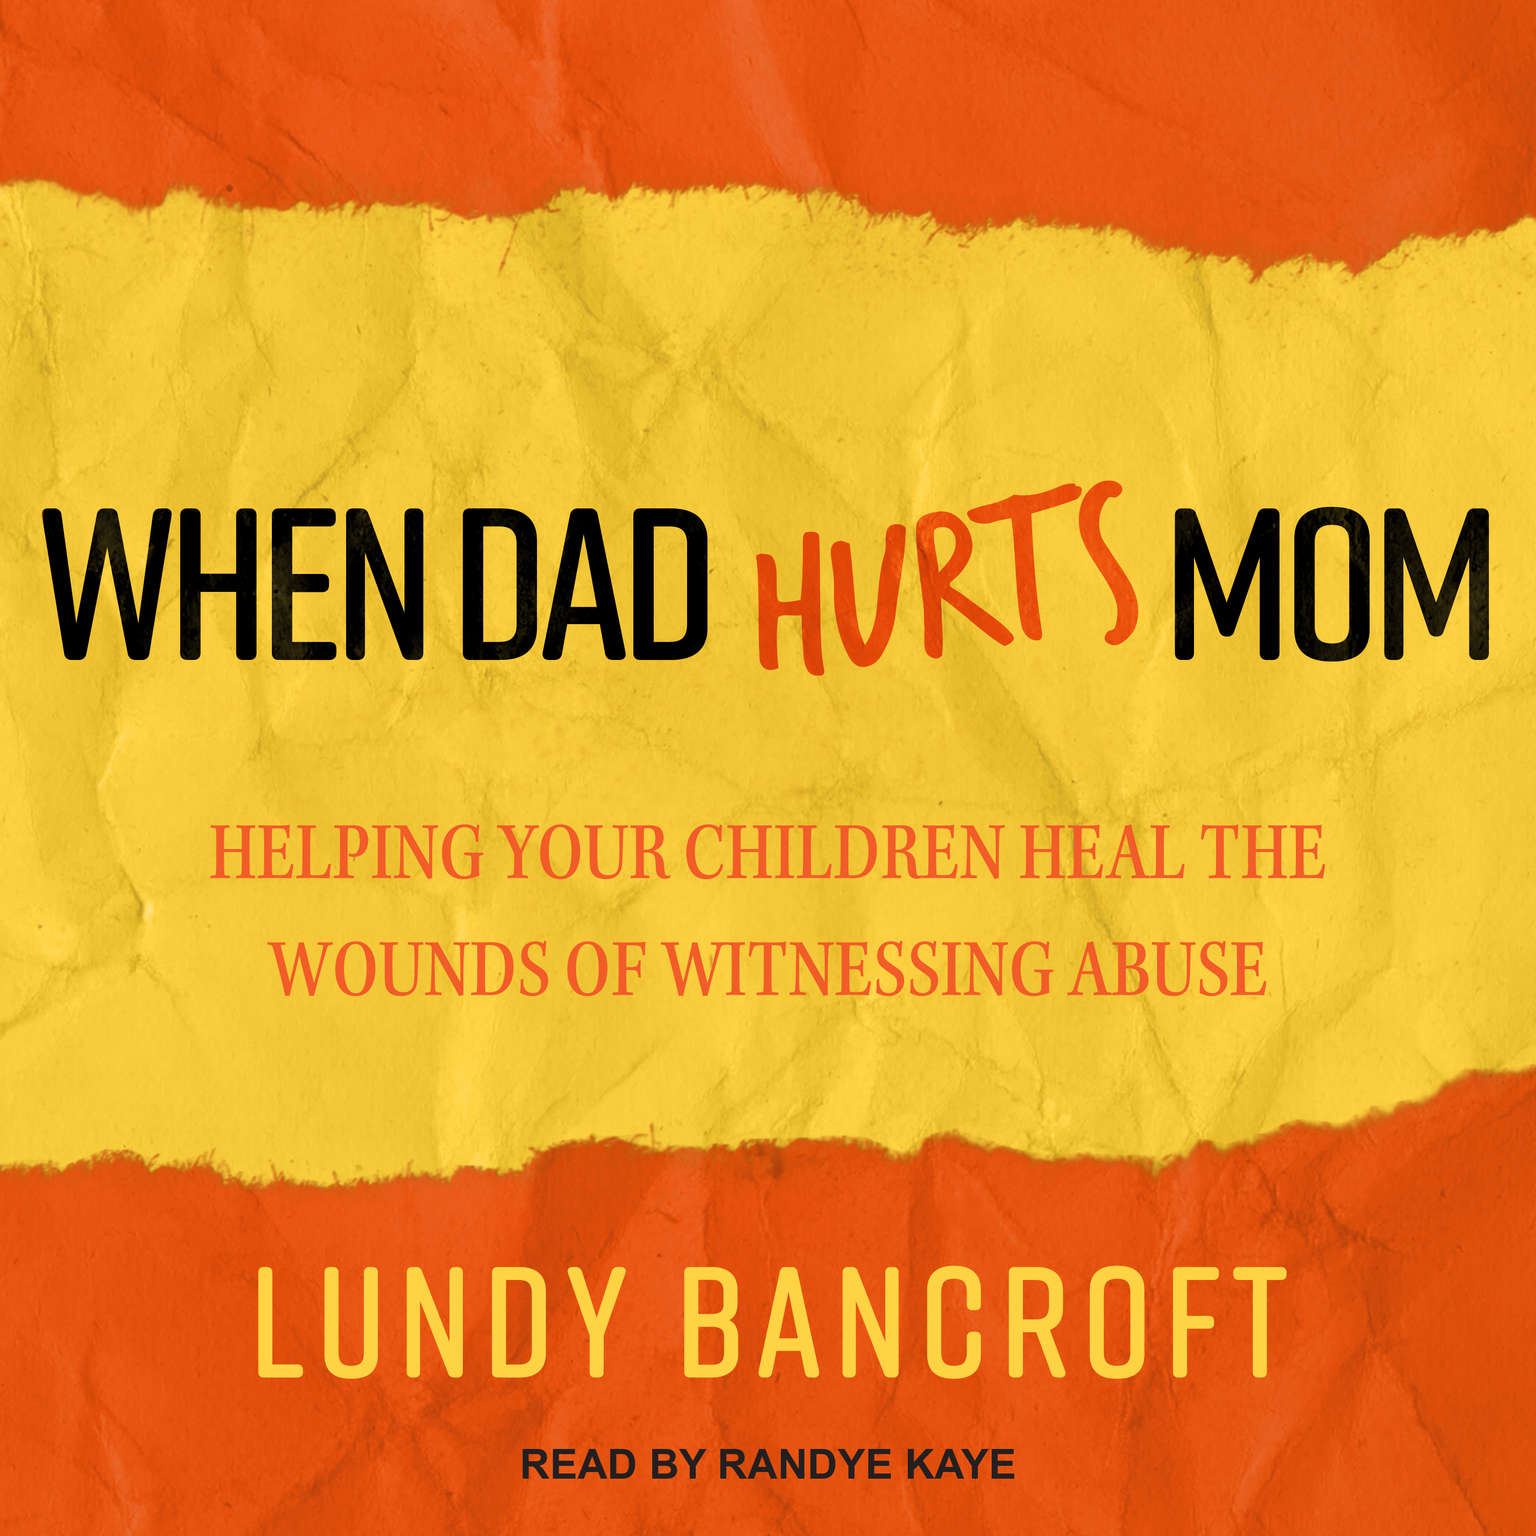 When Dad Hurts Mom: Helping Your Children Heal the Wounds of Witnessing Abuse Audiobook, by Lundy Bancroft